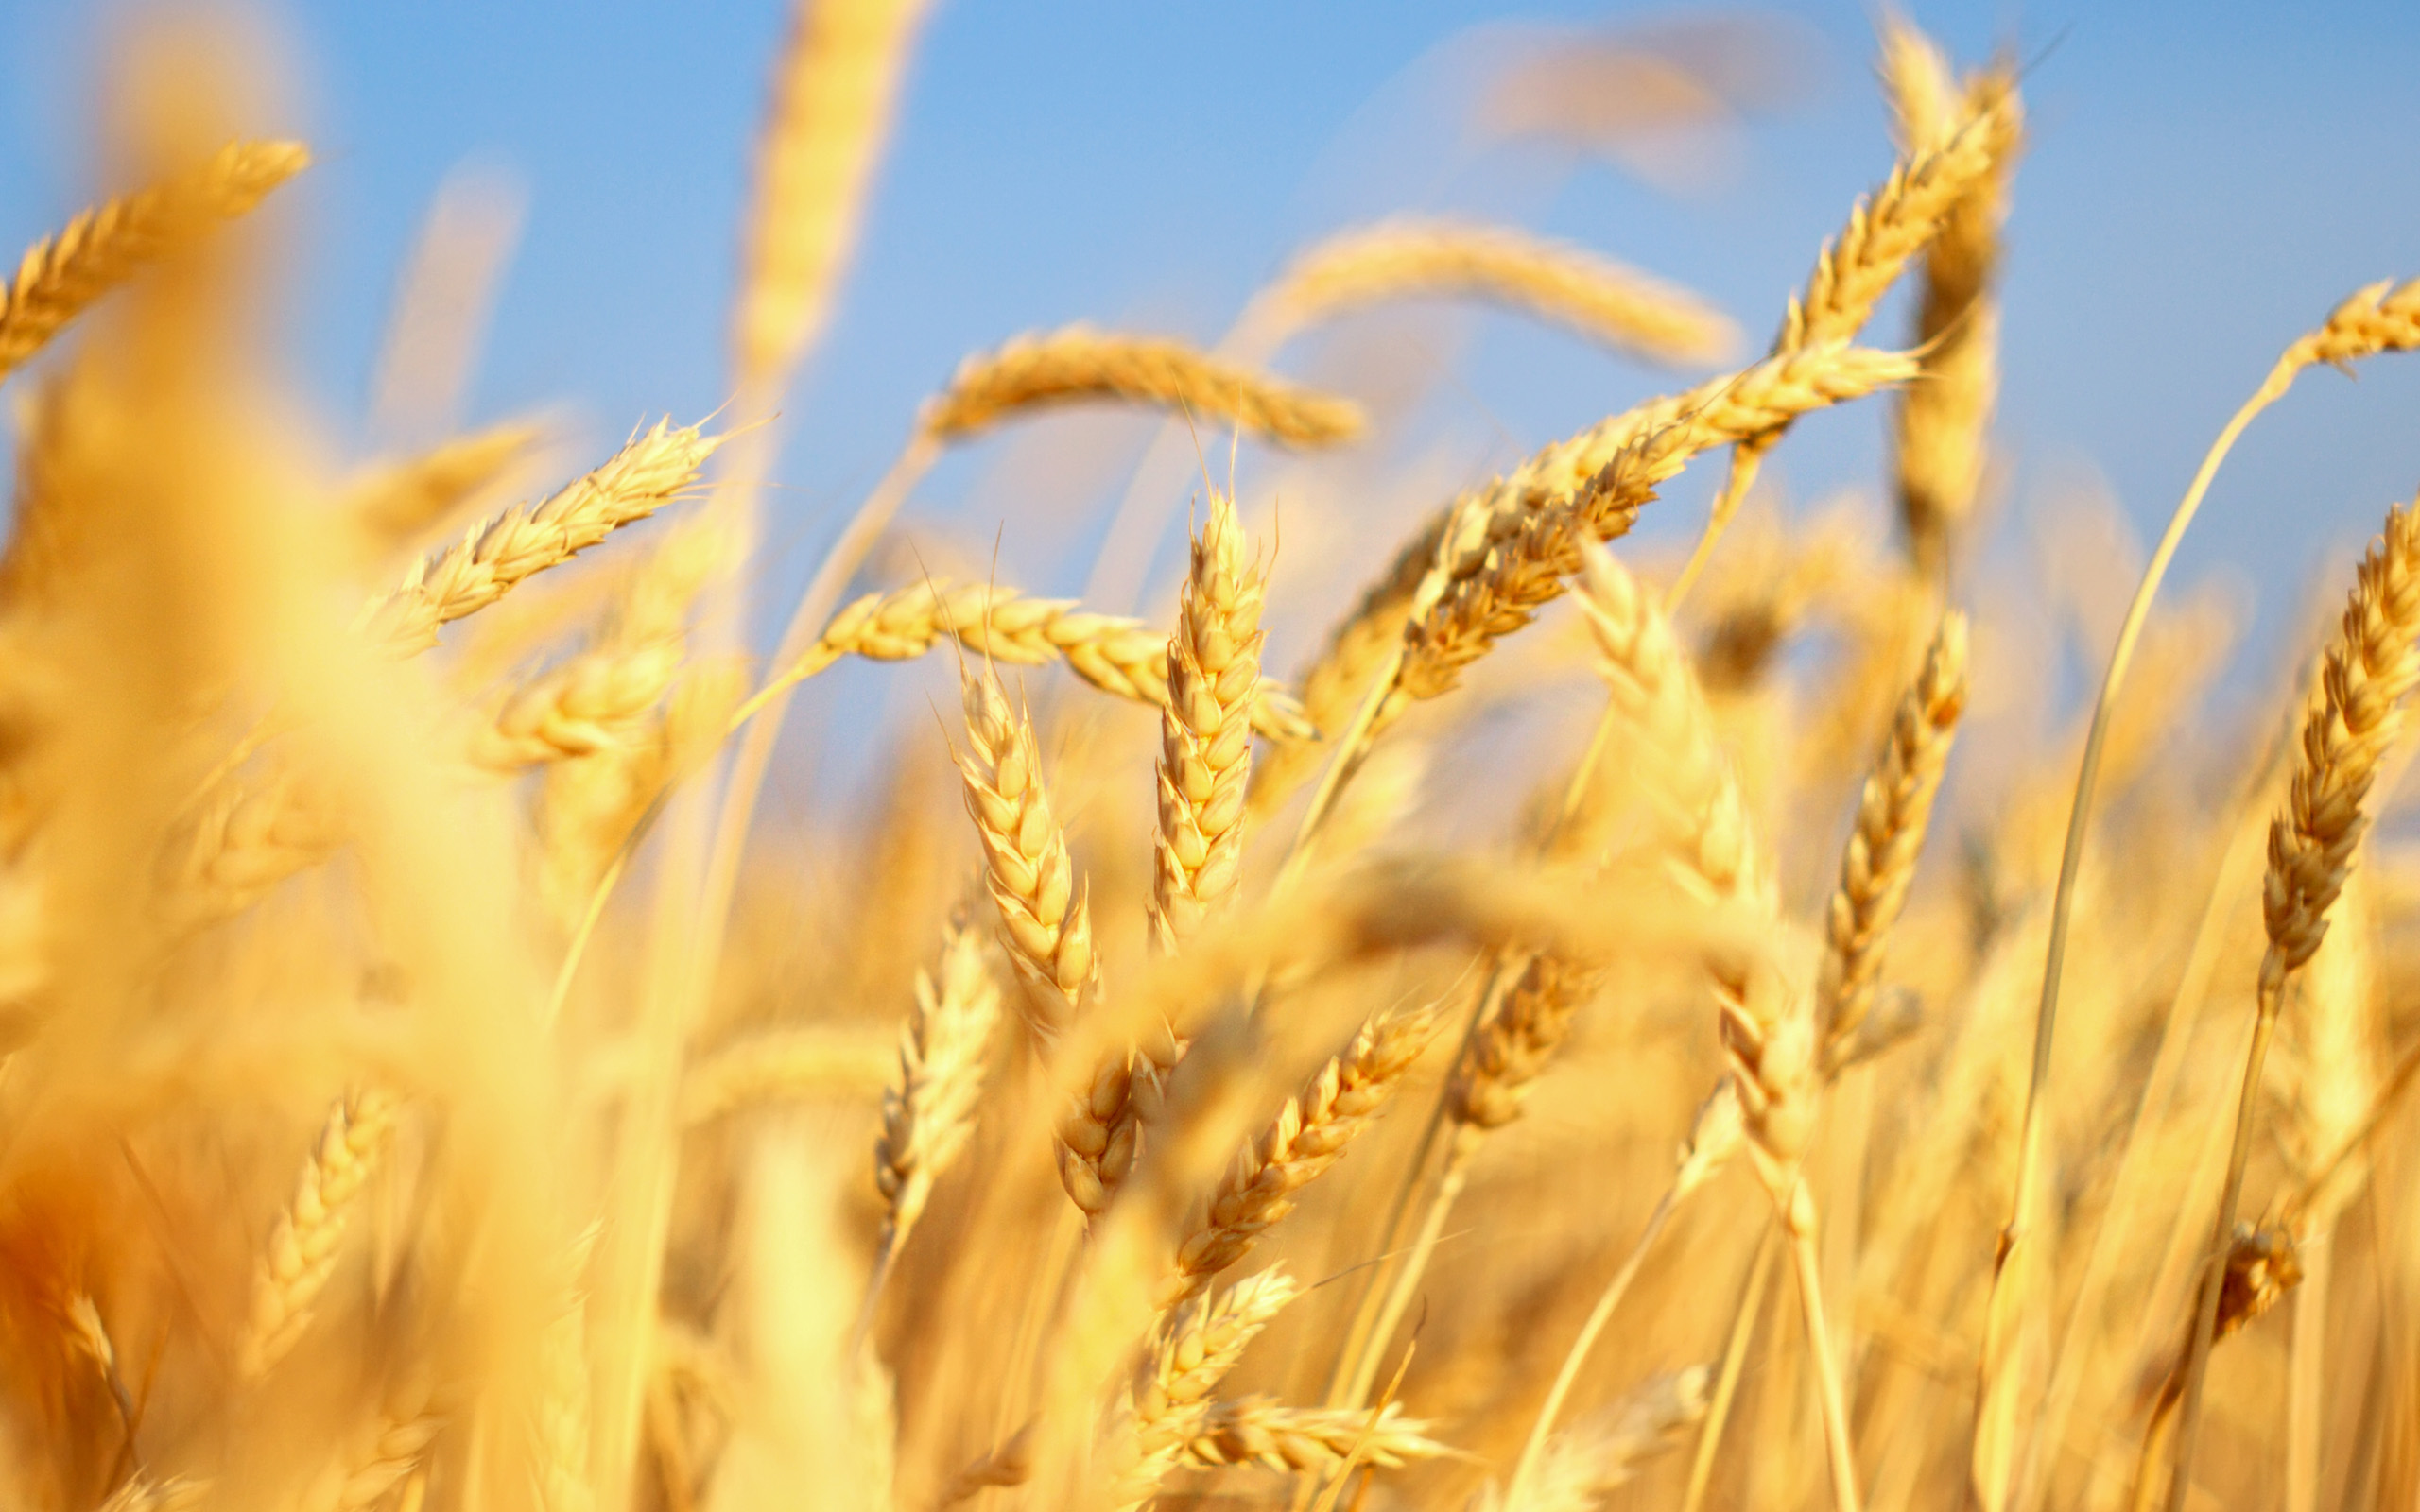 Fall Harvest Iphone Wallpaper Wheat Full Hd Wallpaper And Background Image 2560x1600